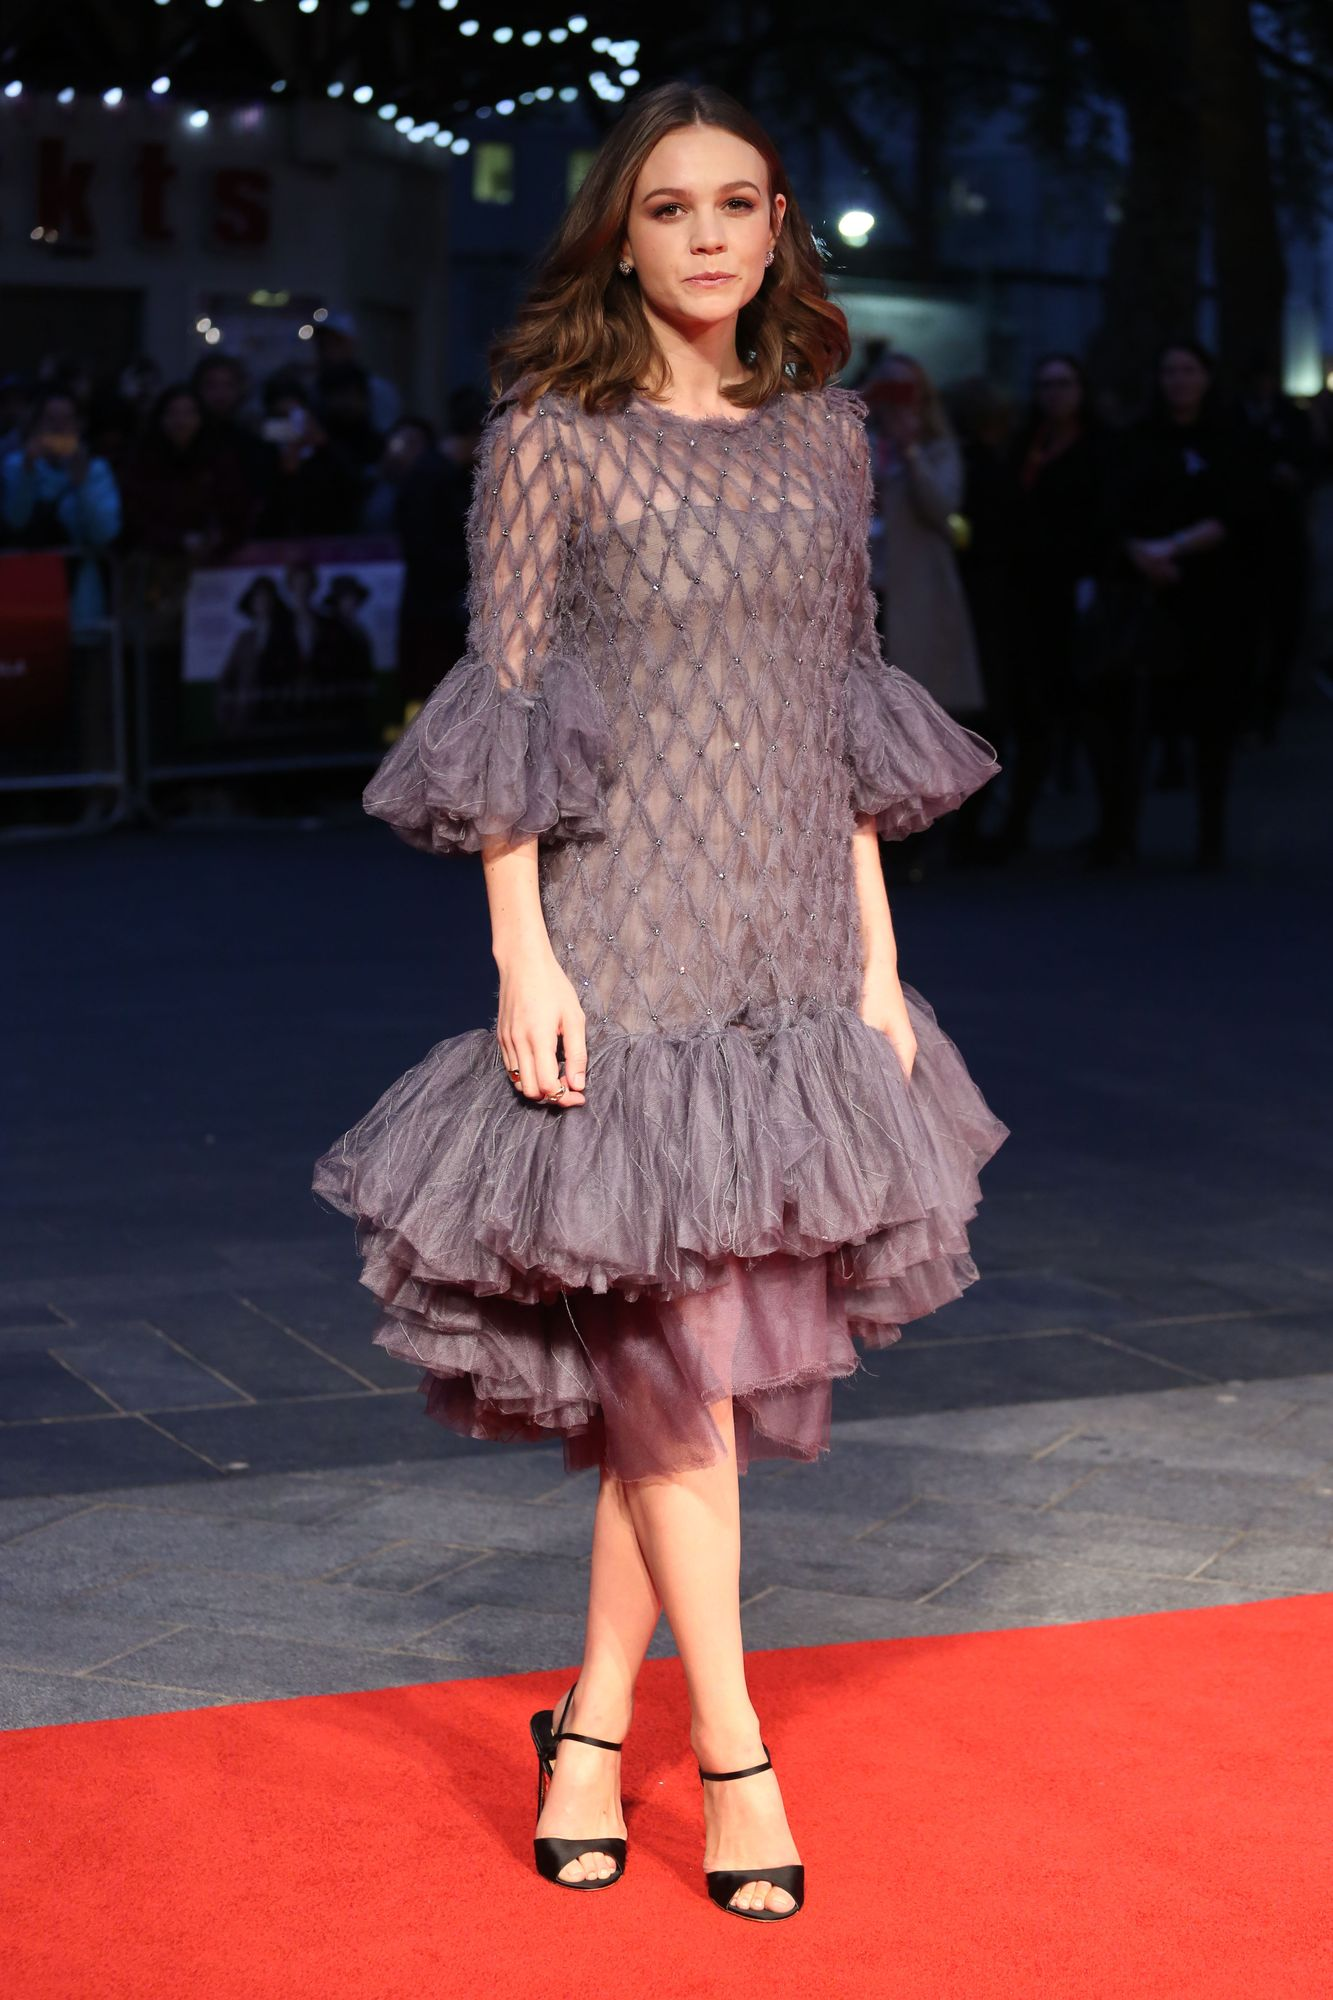 carey-mulligan-in-chanel-couture-suffragette-london-film-festival-opening-night-gala-premiere